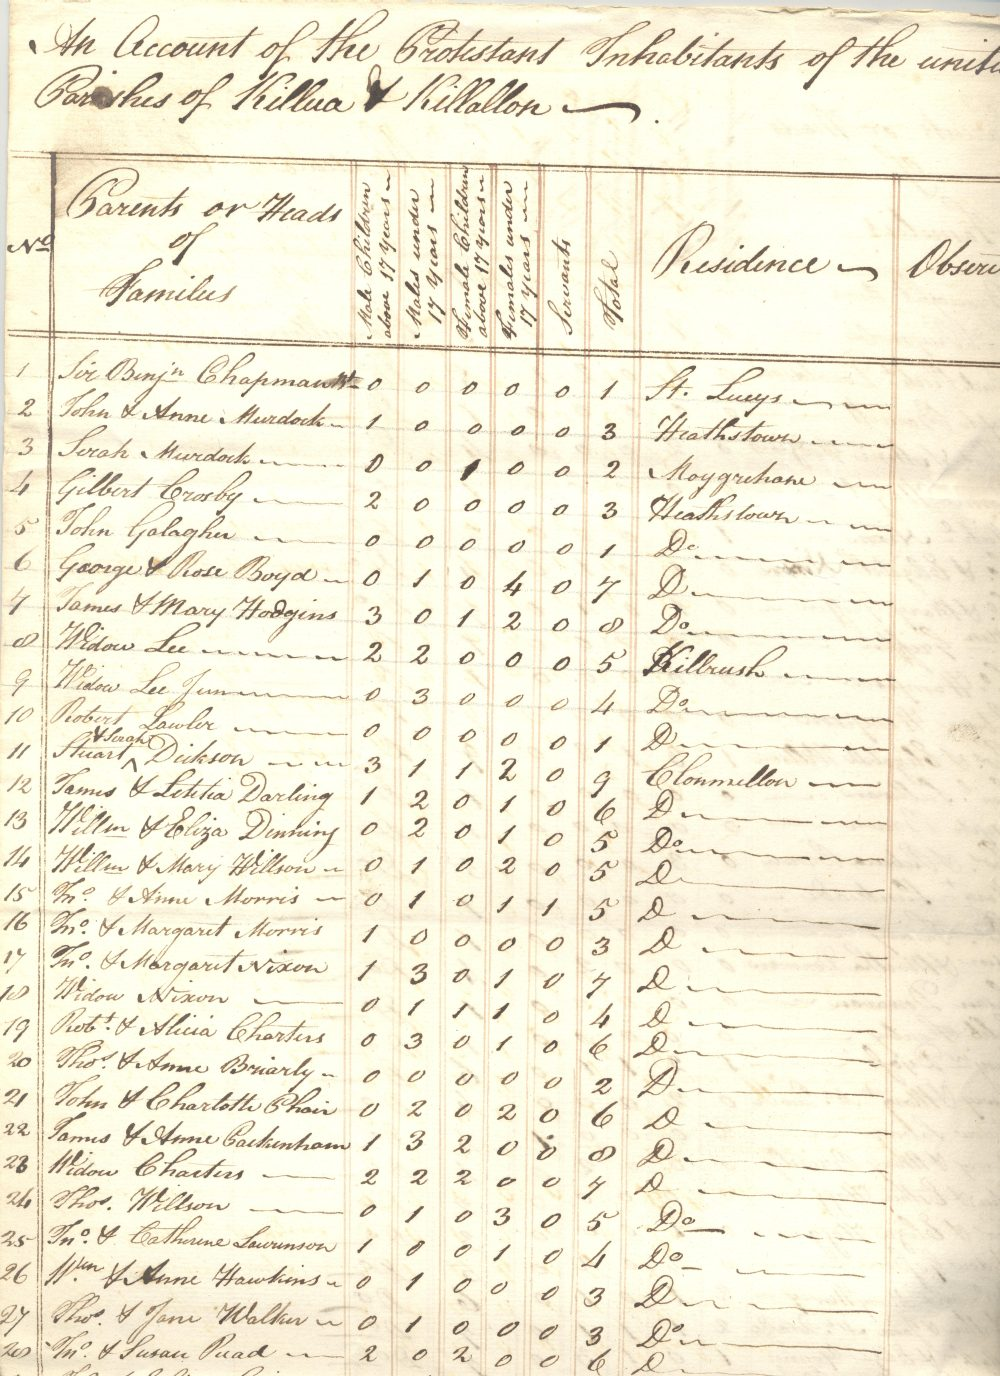 Returns of protestants in the parishes of Killua and Killallon, giving numbers in family, residence etc 1803, arranged by parish. Ordered by Bishop Thomas Lewis O'Beirne, bishop of Meath 1798-1823,  RCB Library D7/12/2/2